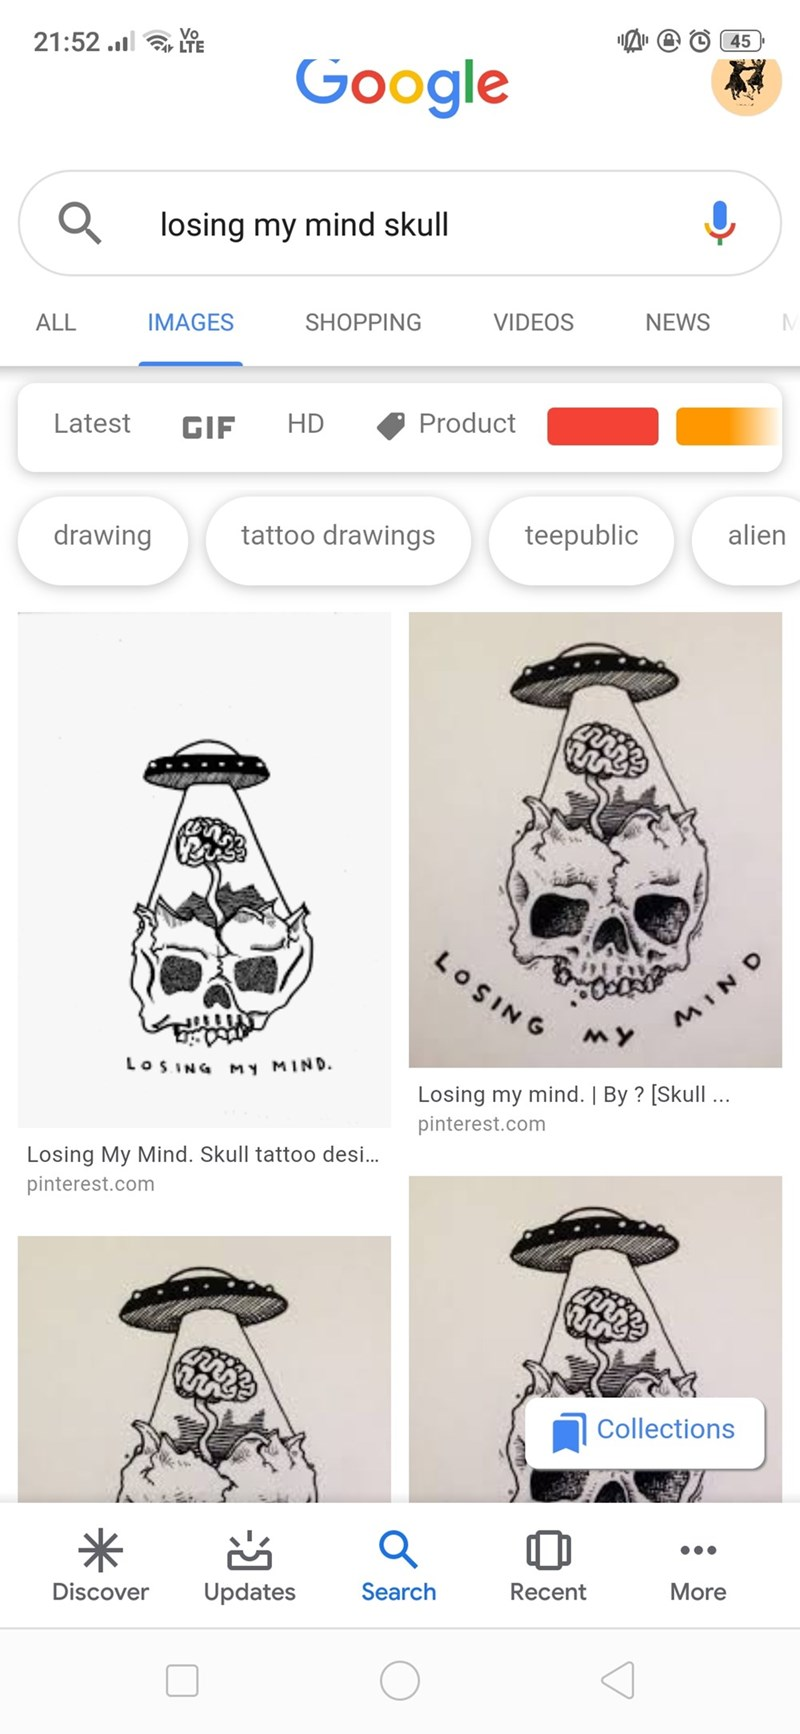 Text - 21:52 . LTE Vo O45 Google losing my mind skull IMAGES VIDEOS NEWS ALL SHOPPING Product Latest HD GIF tattoo drawings drawing teepublic alien LOSING MIND My LOSING My MIND. Losing my mind. | By? [Skull pinterest.com Losing My Mind. Skull tattoo des... pinterest.com Collections Search Discover Updates Recent More